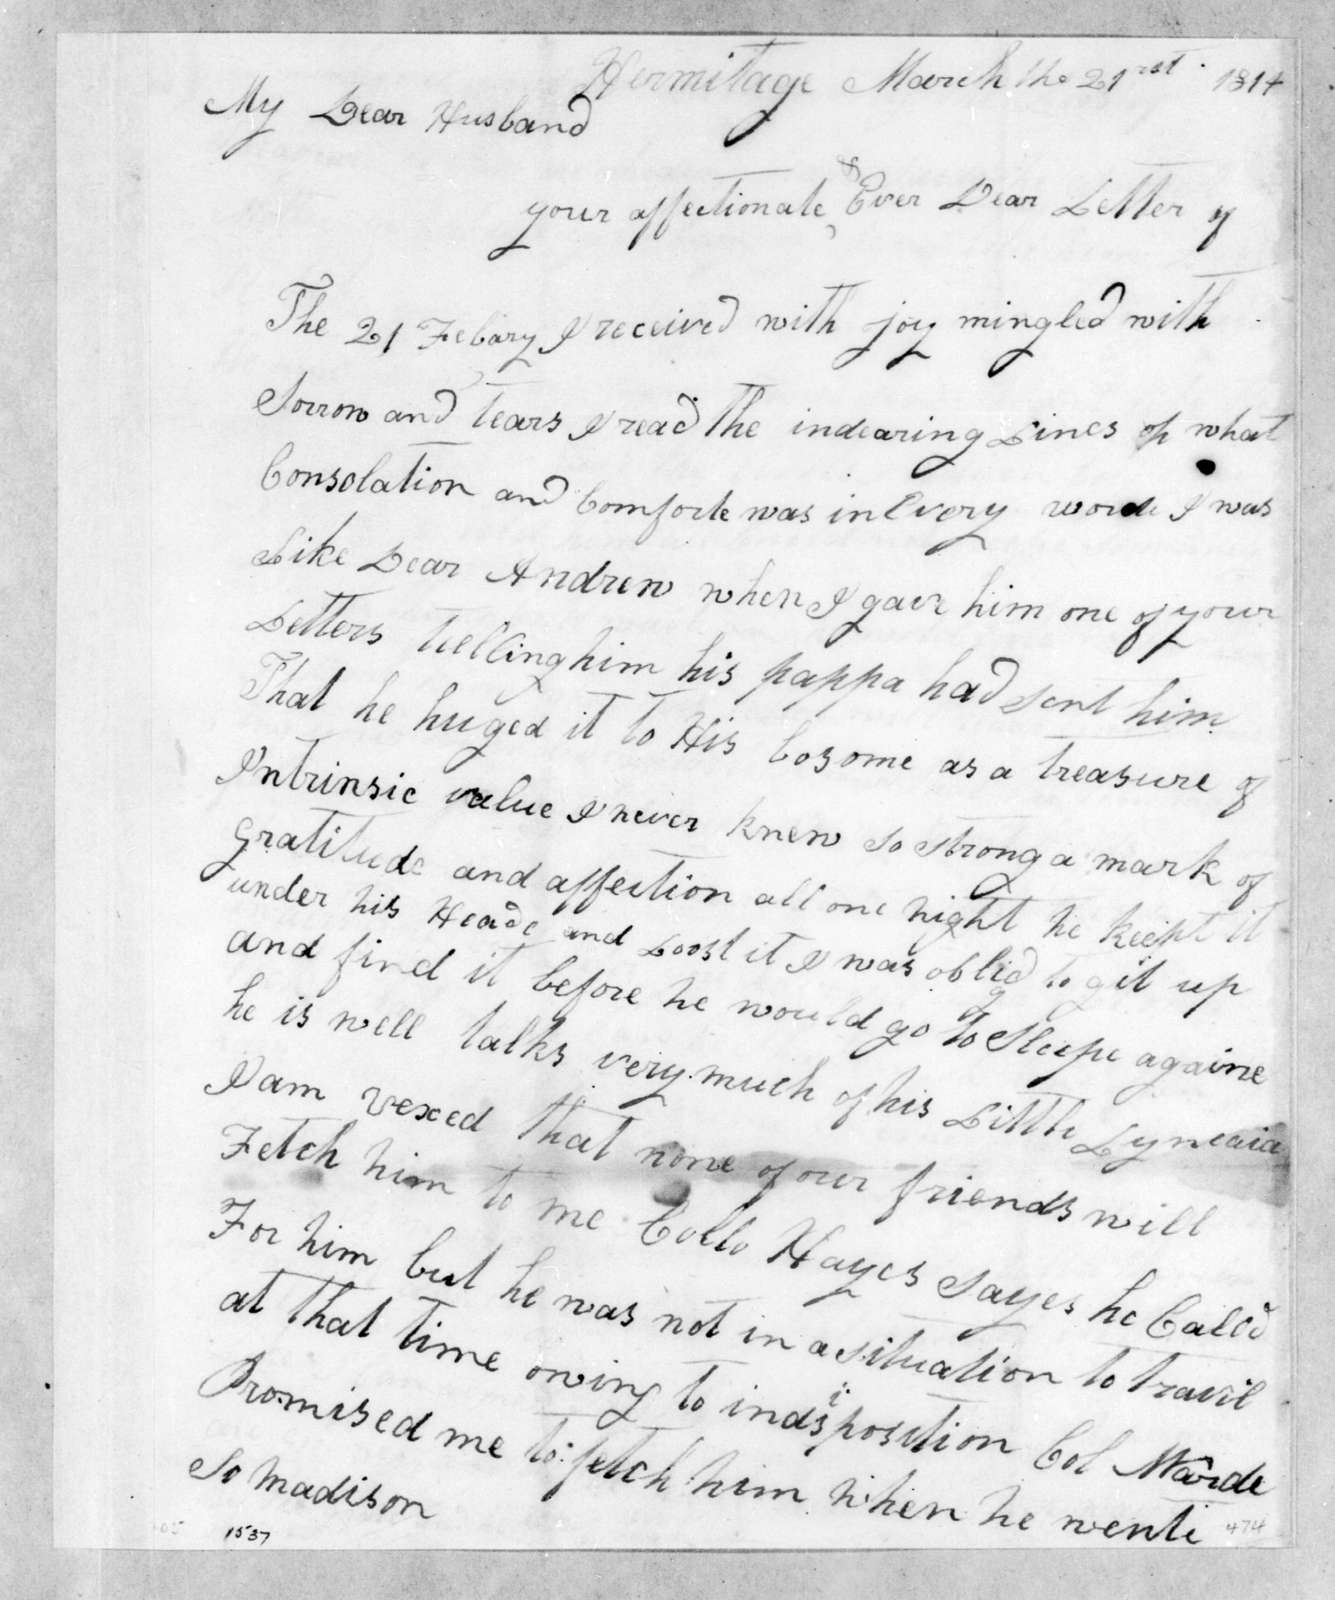 Rachel Donelson Jackson to Andrew Jackson, March 21, 1814